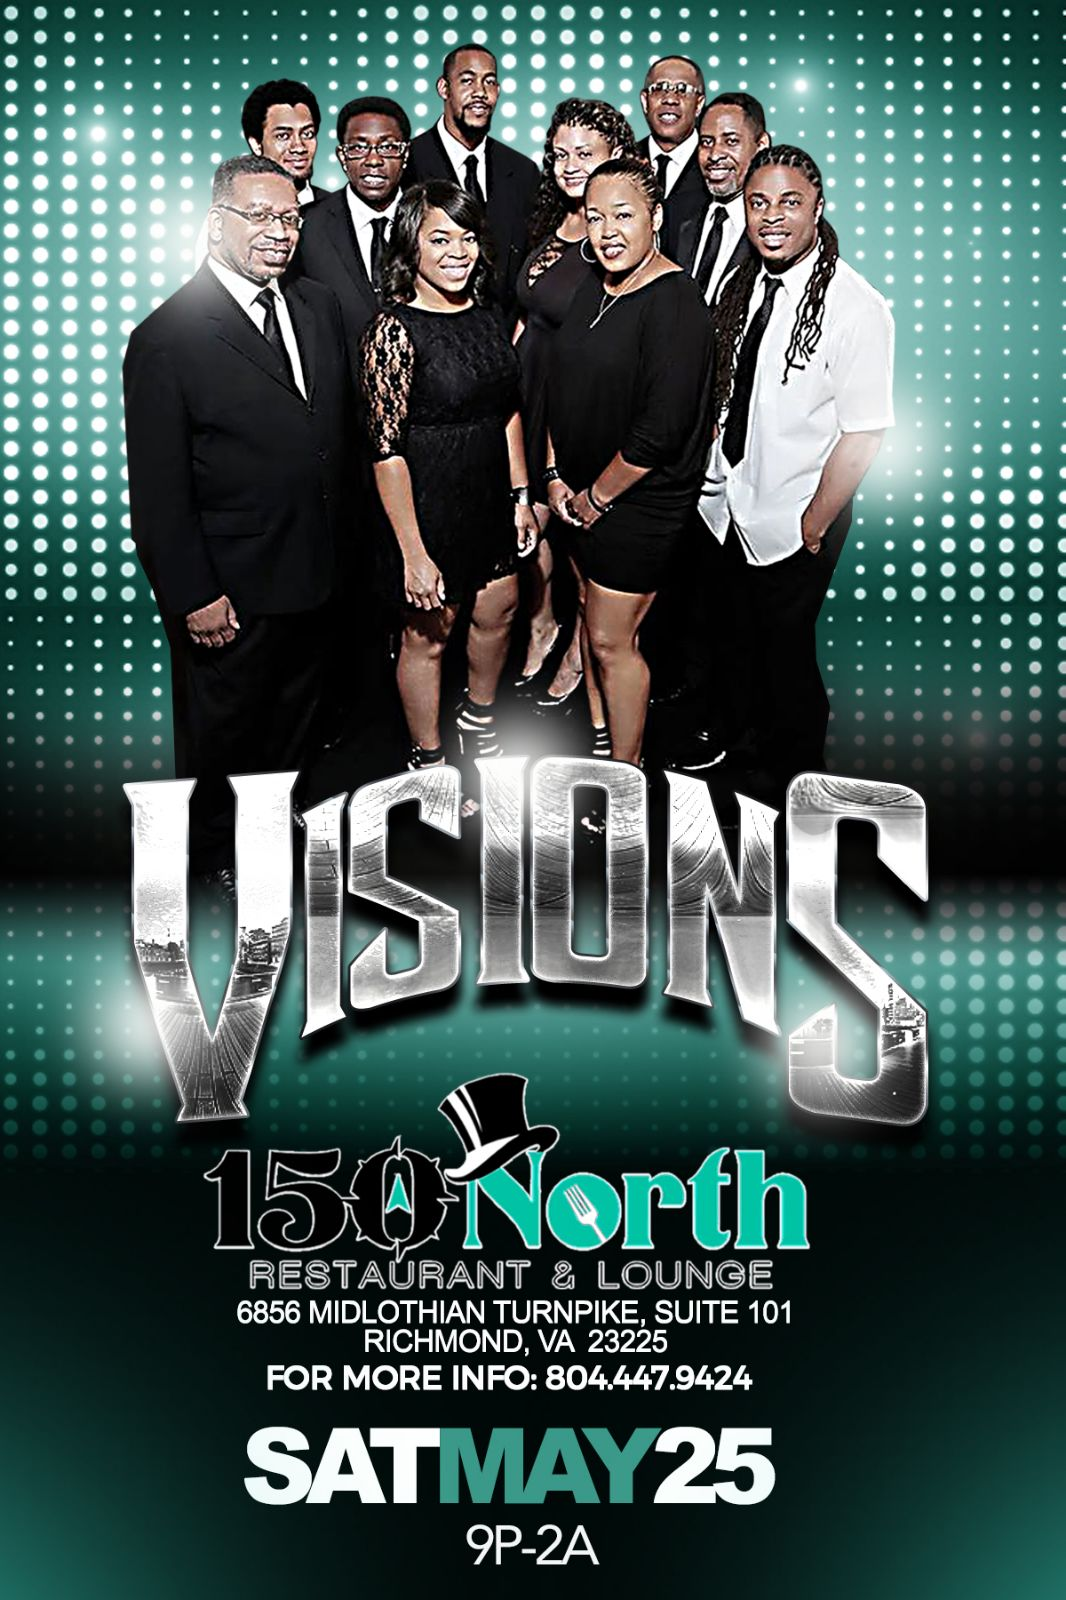 Visions at 150 North Restaurant & Lounge